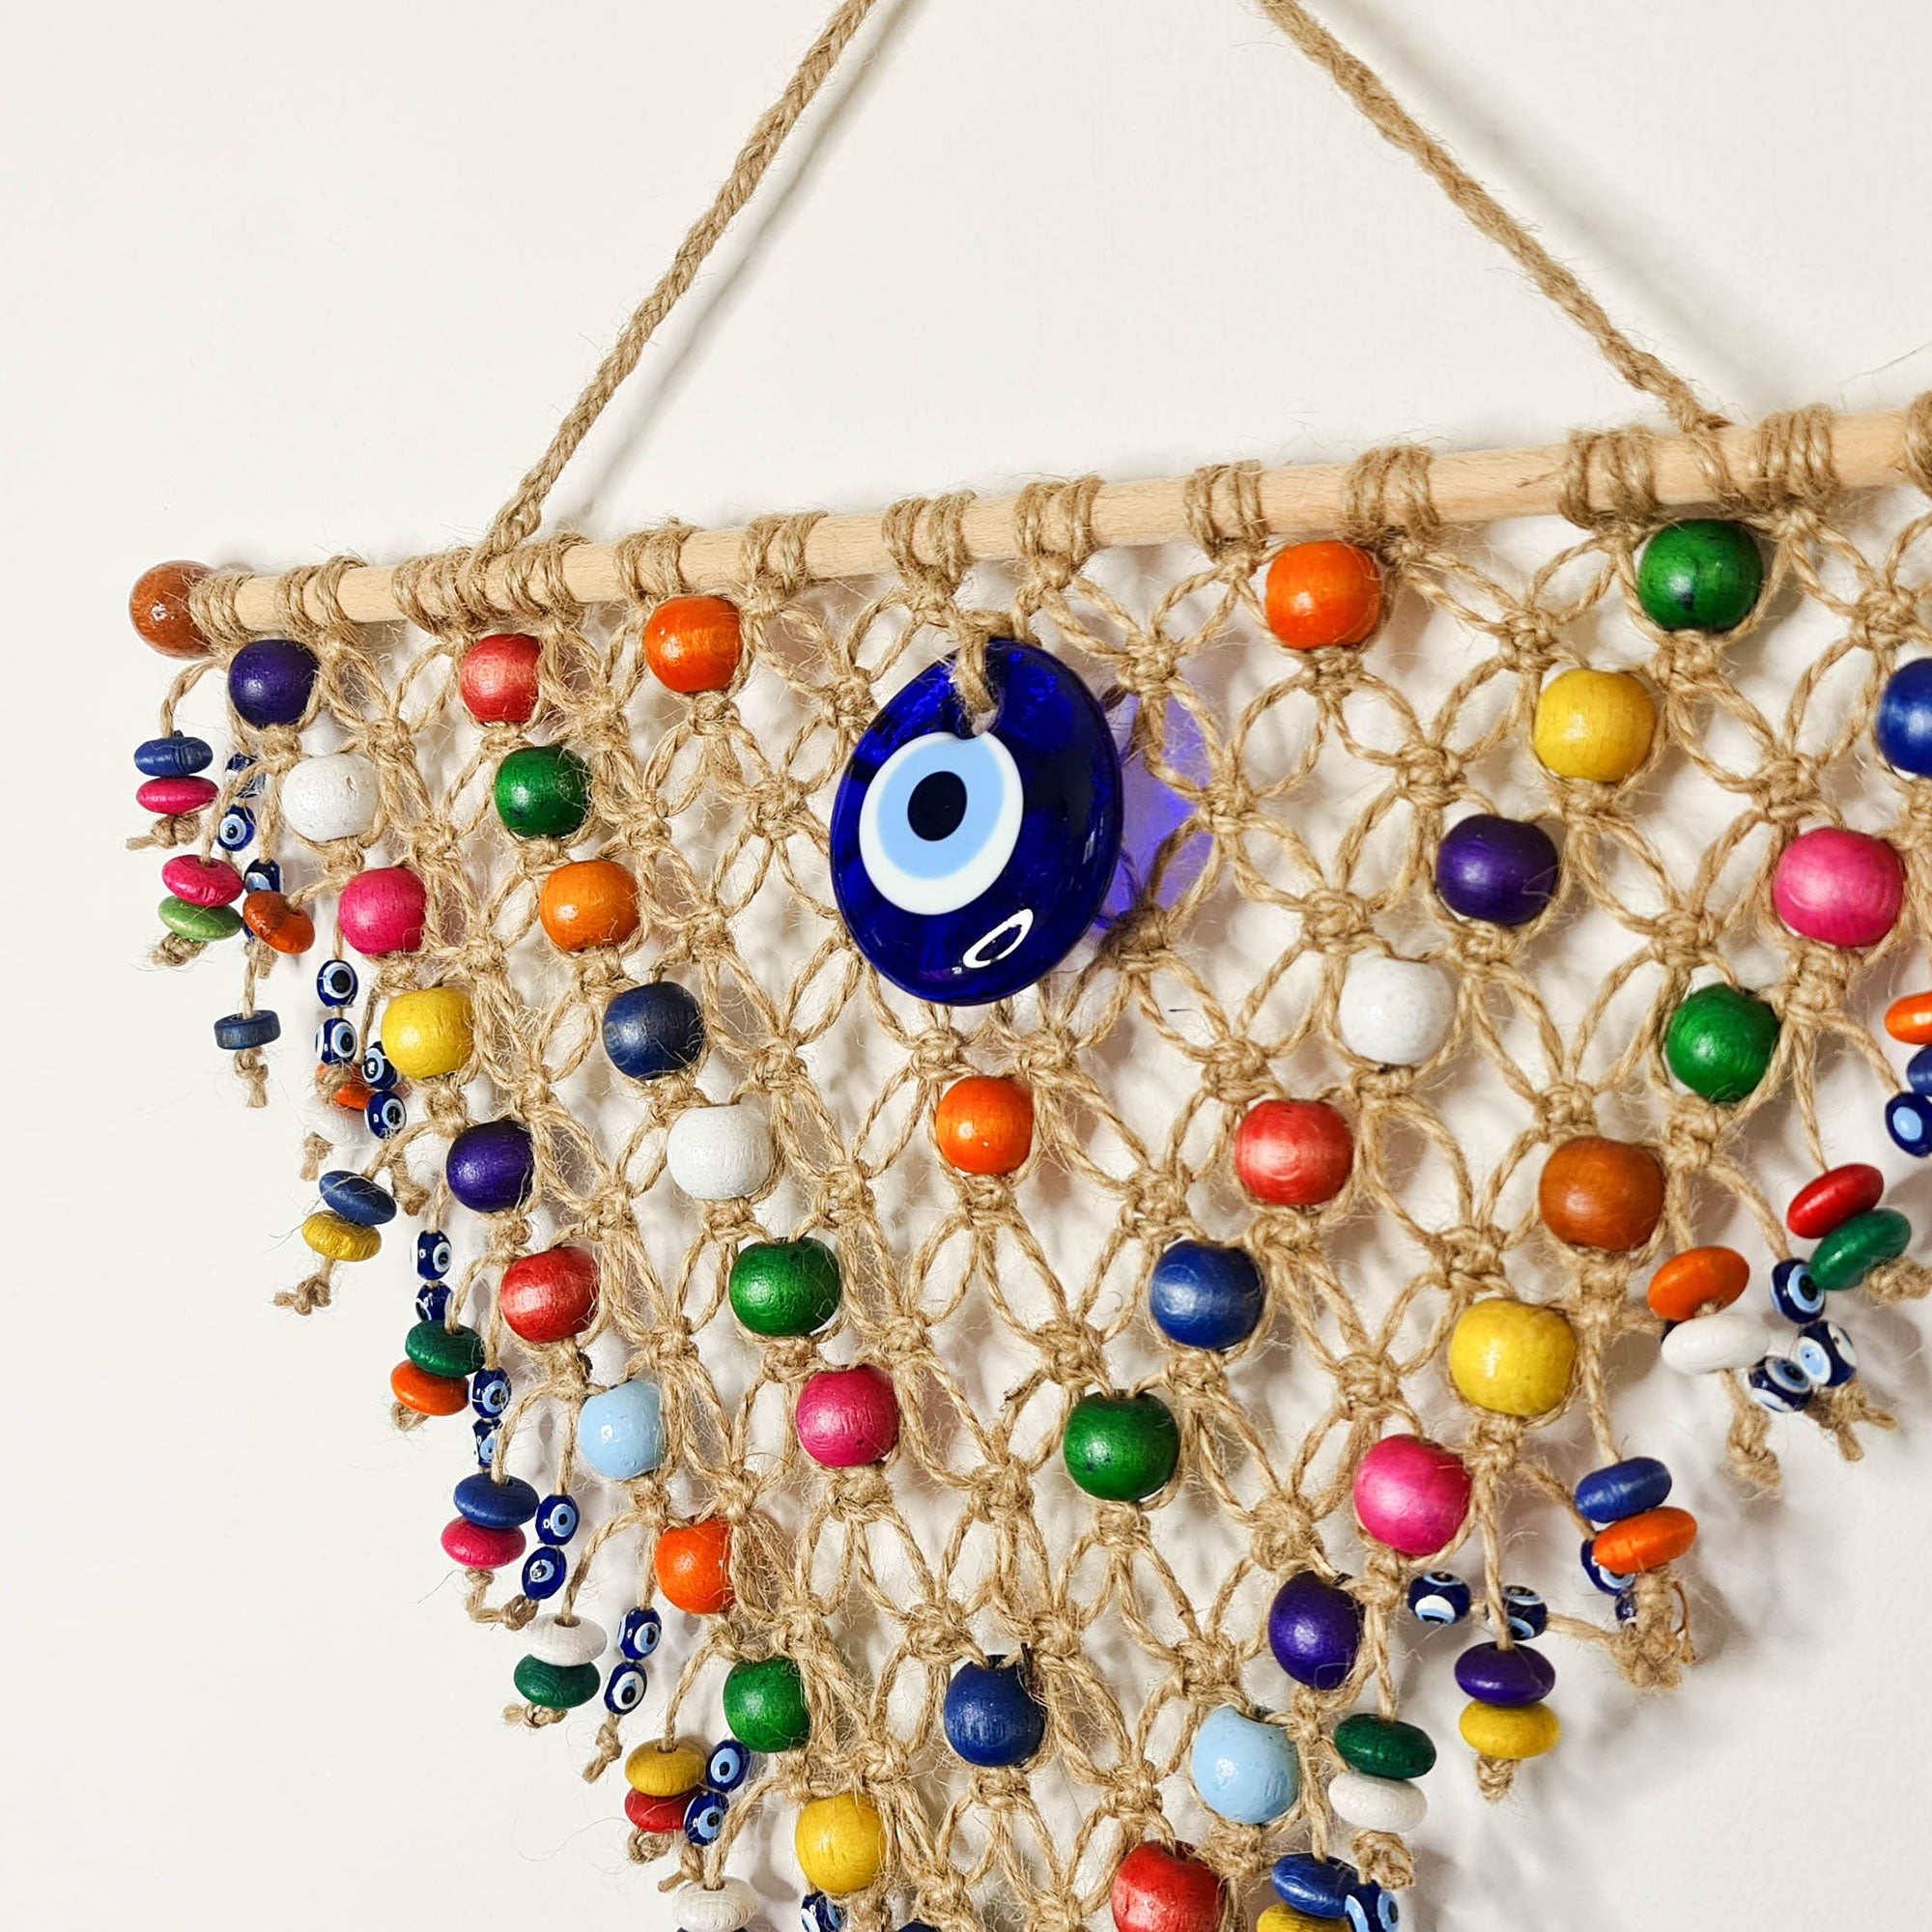 Nazar Turkish Evil Eye Bohemian Macramé Hanging Dream Catcher